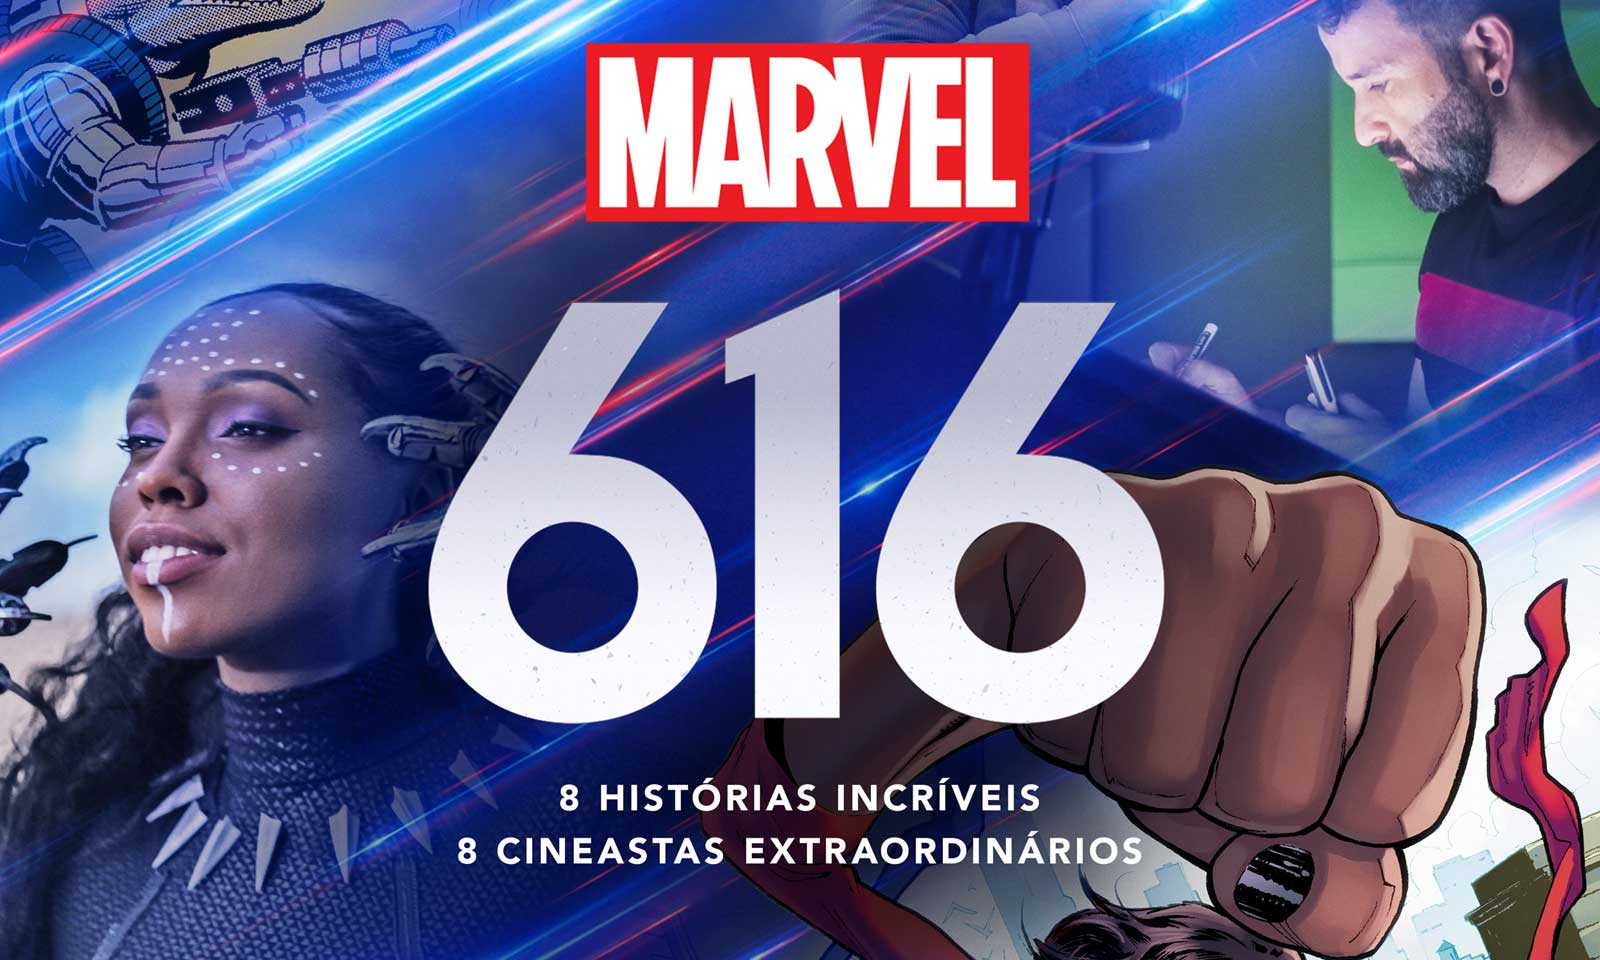 Marvel-616-Disney+-série-documental